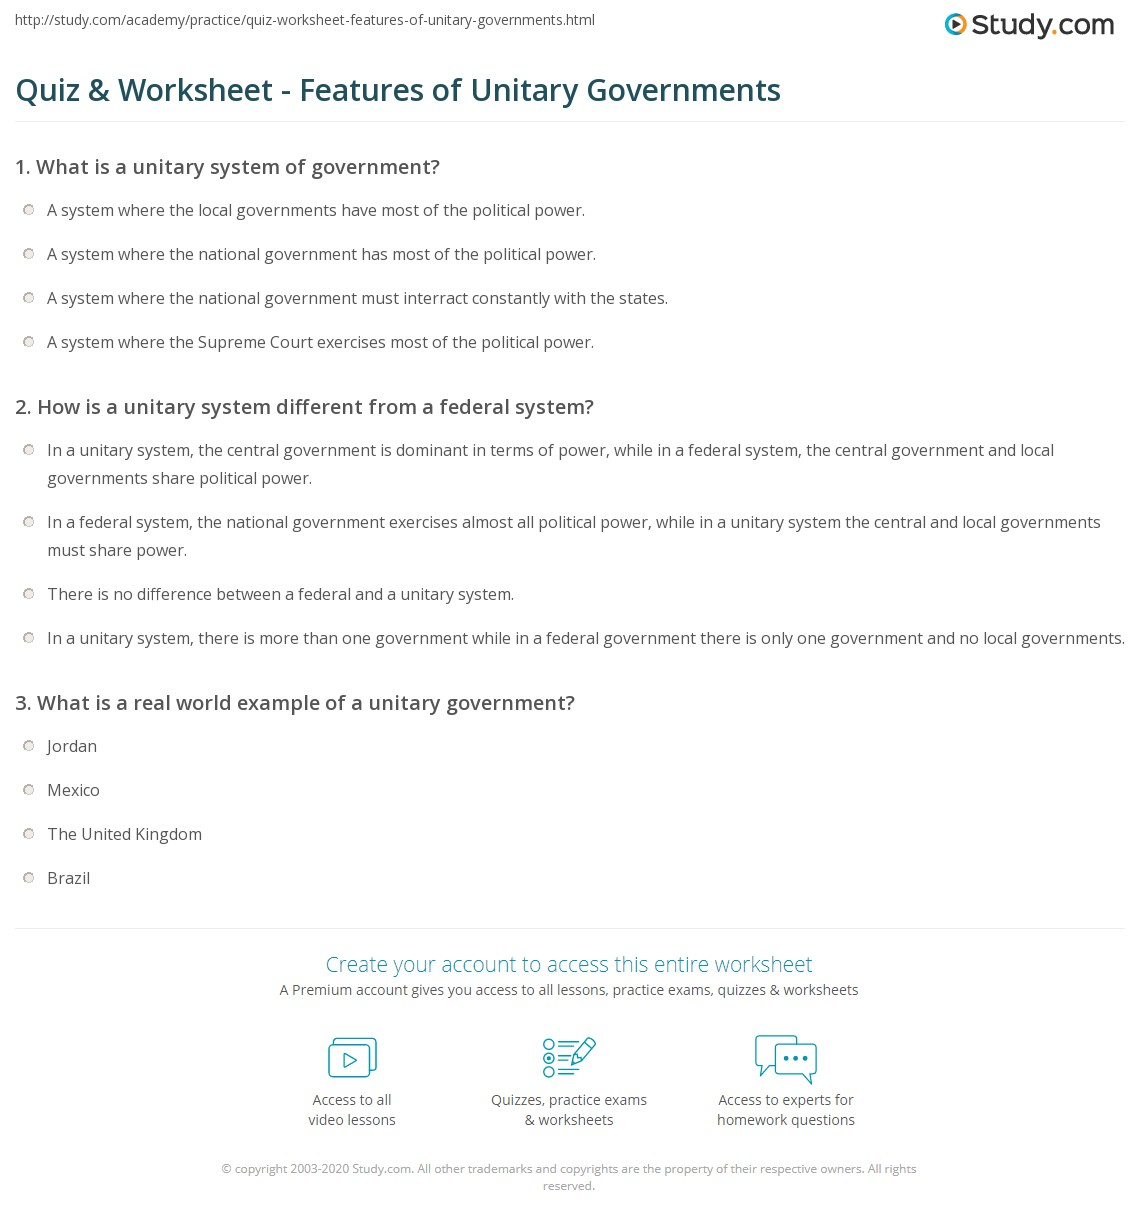 Quiz & Worksheet - Features of Unitary Governments | Study.com